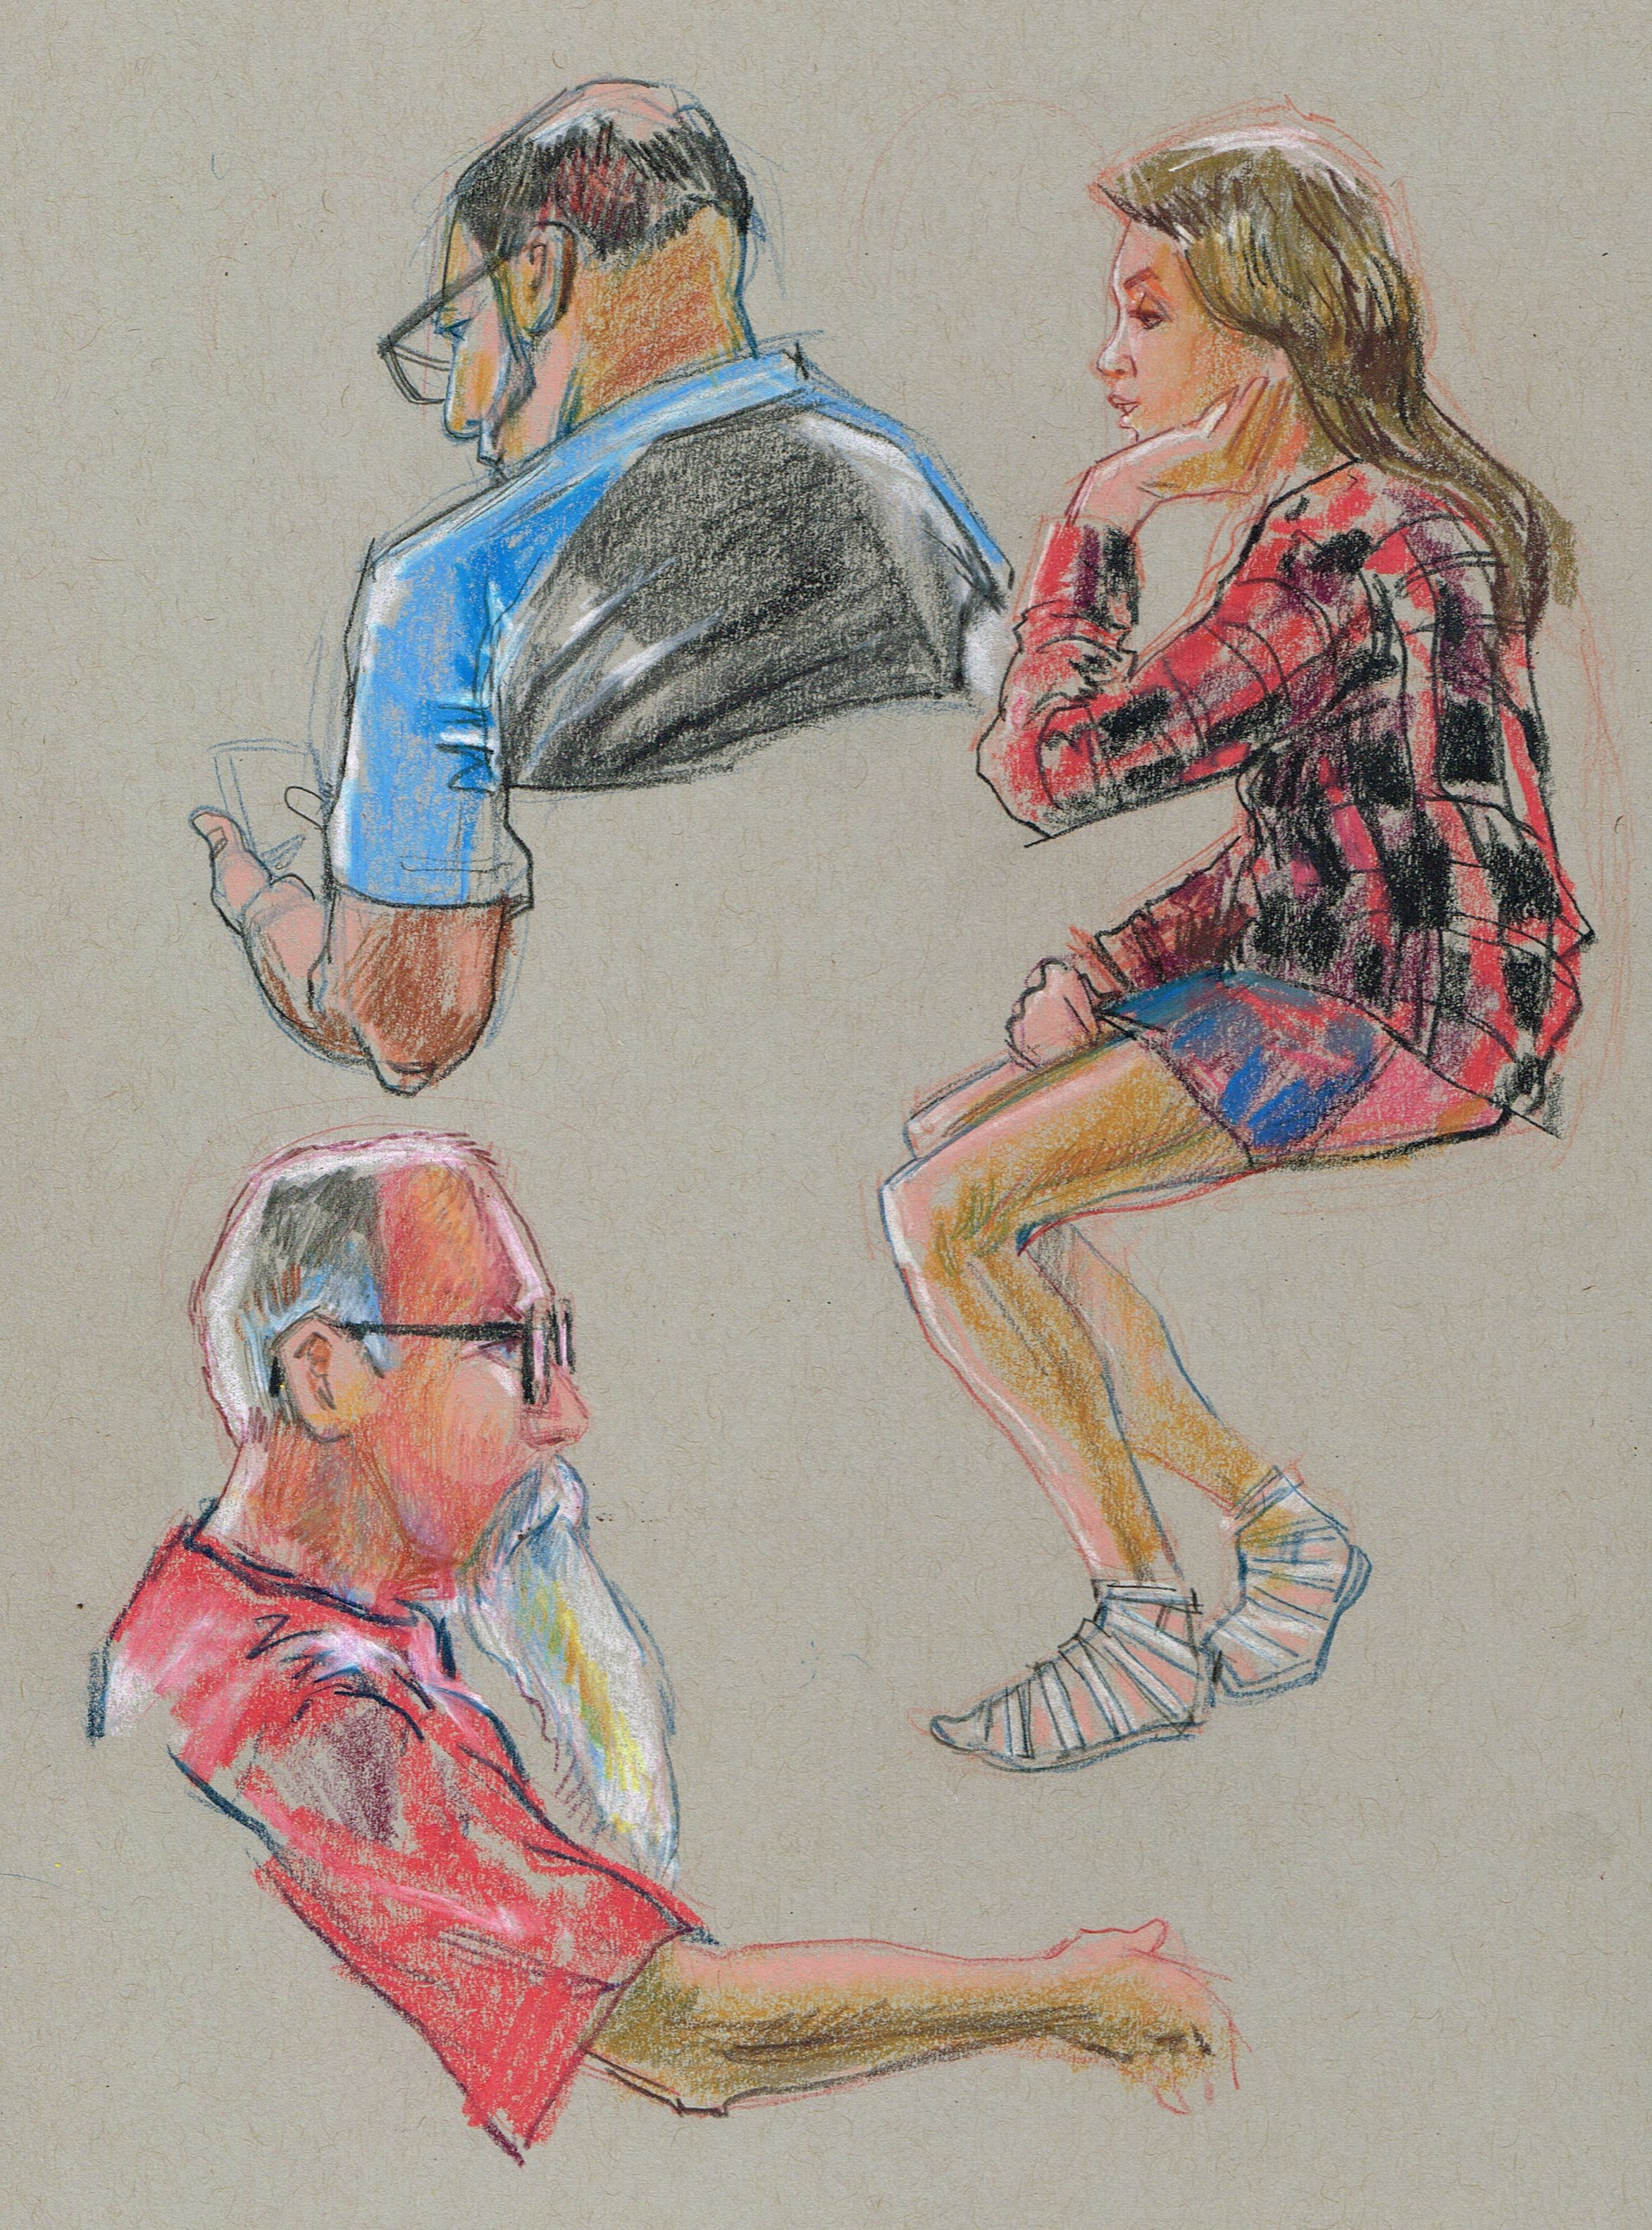 hight resolution of summer concert goers in the plaza colored pencil on toned sketchbook artist gary geraths